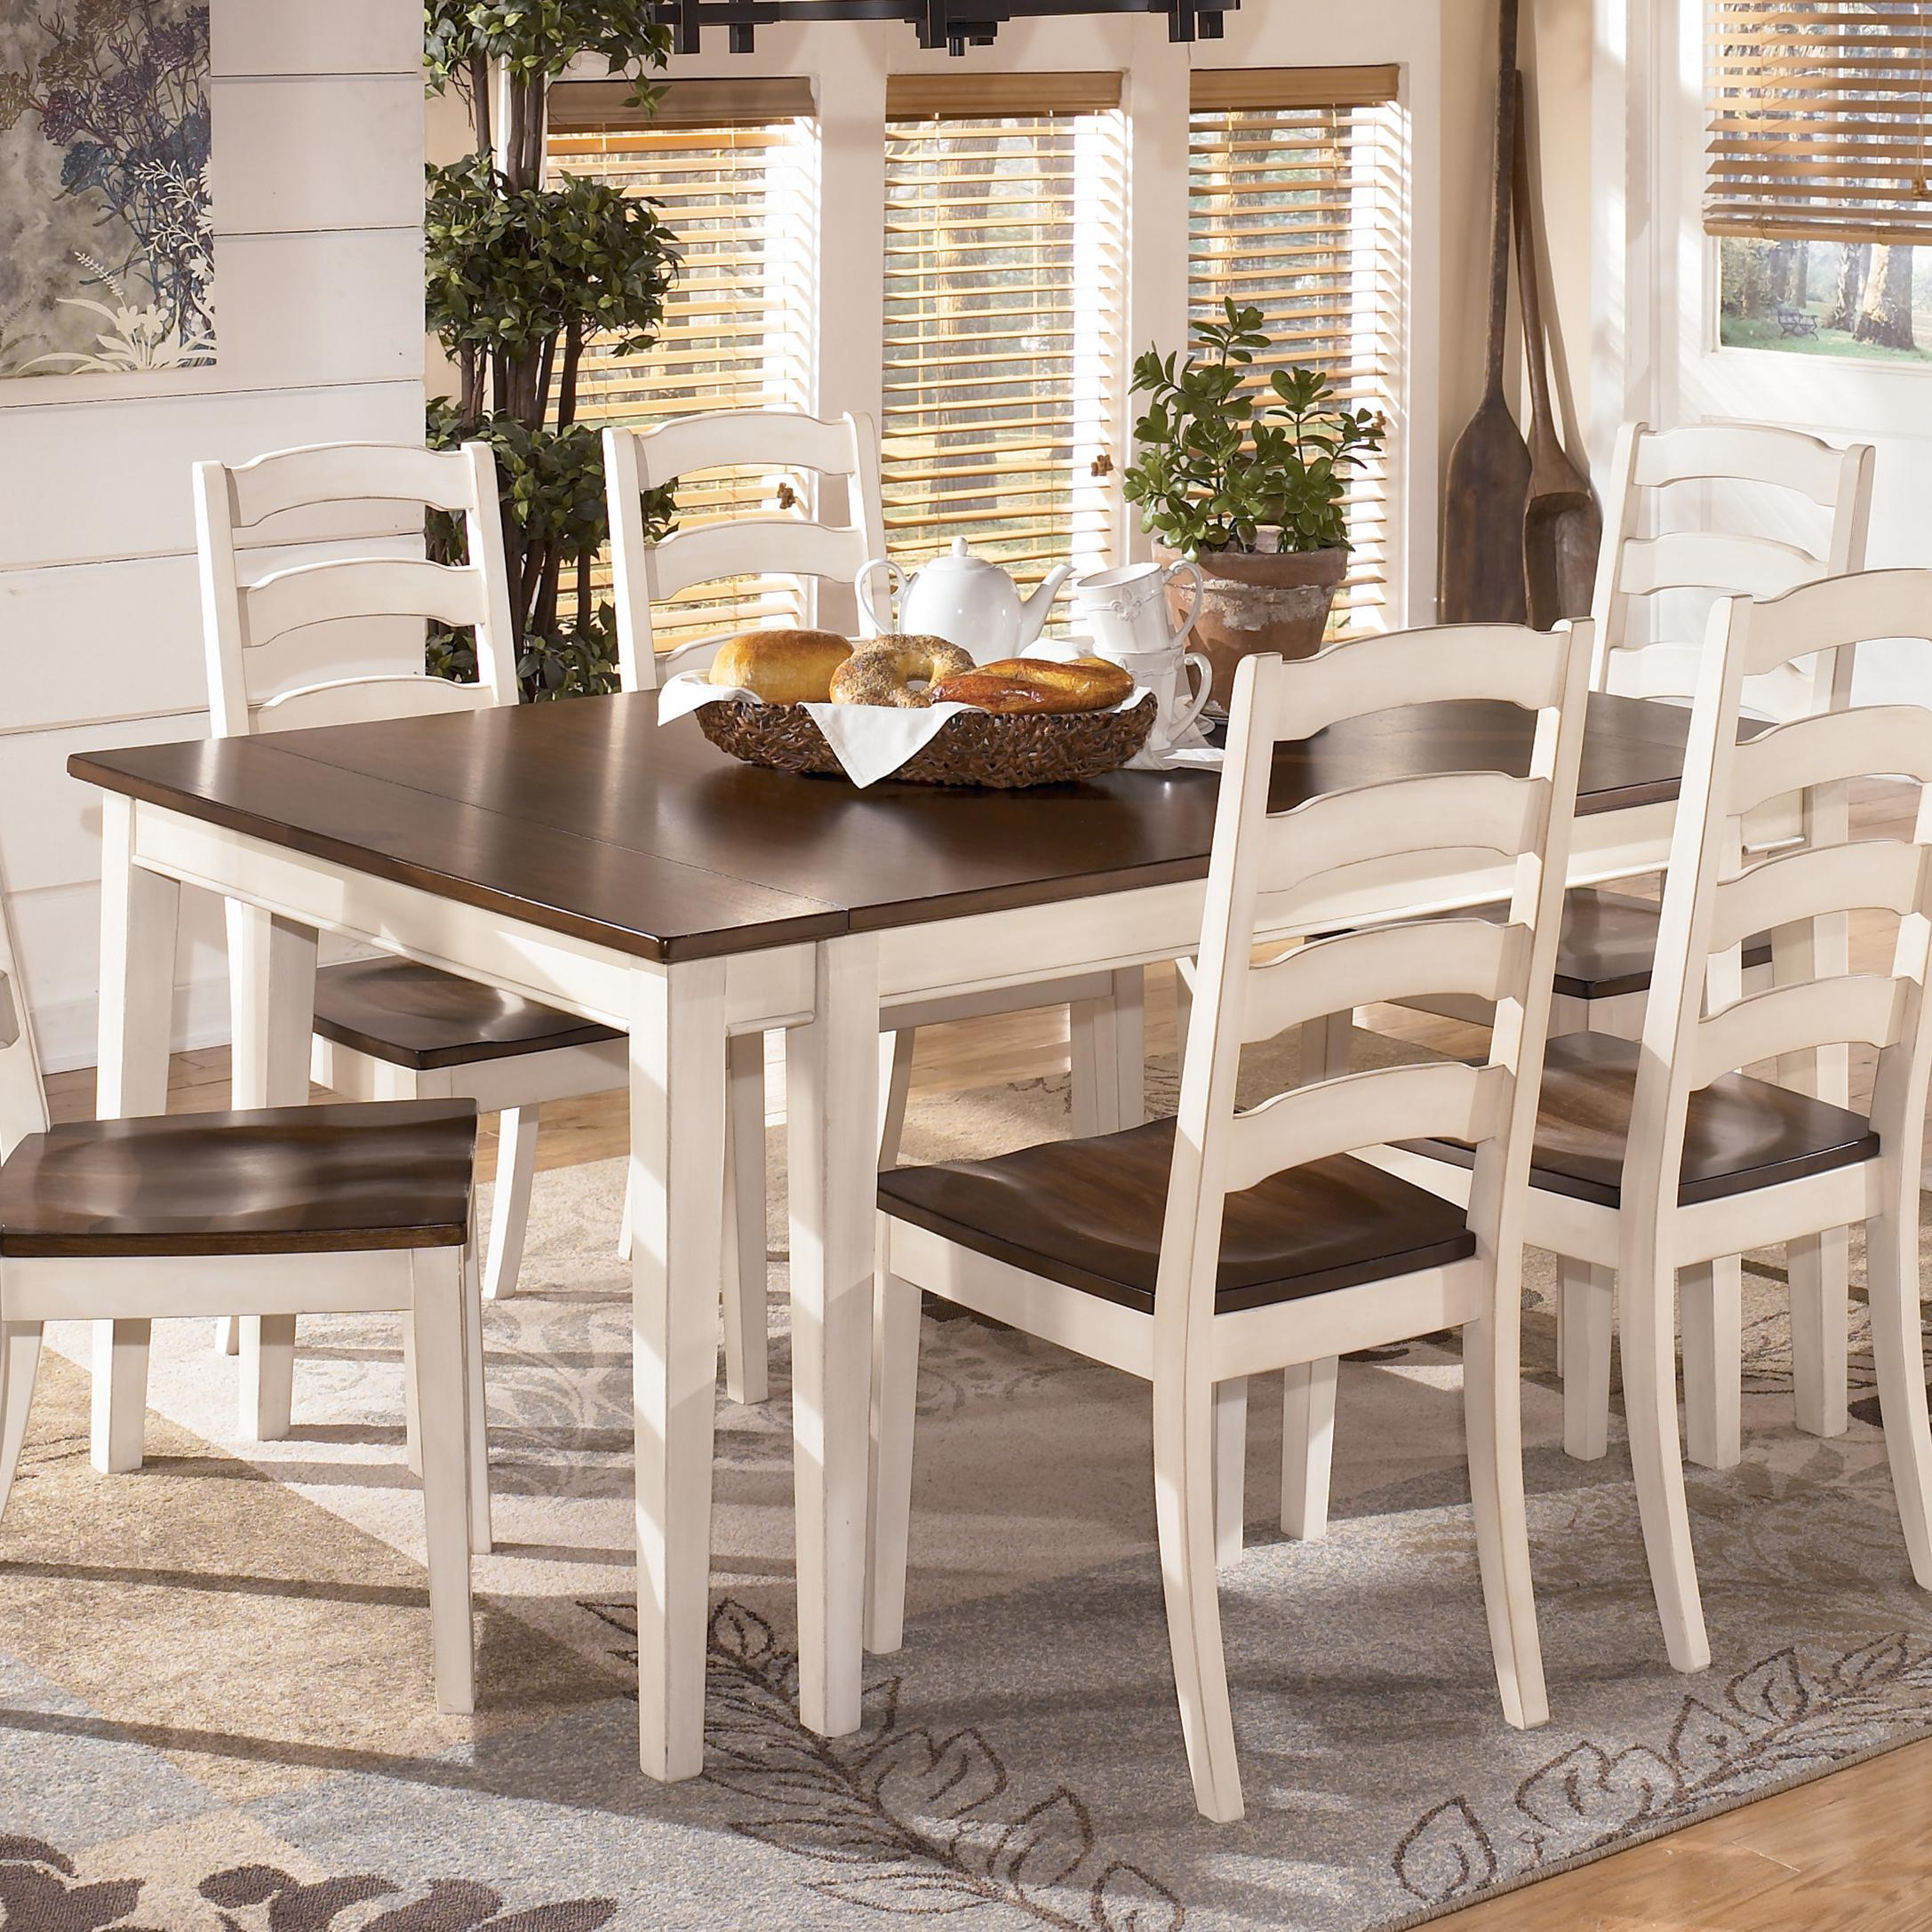 Ashley dining room sets lookup beforebuying for 2 tone dining room sets